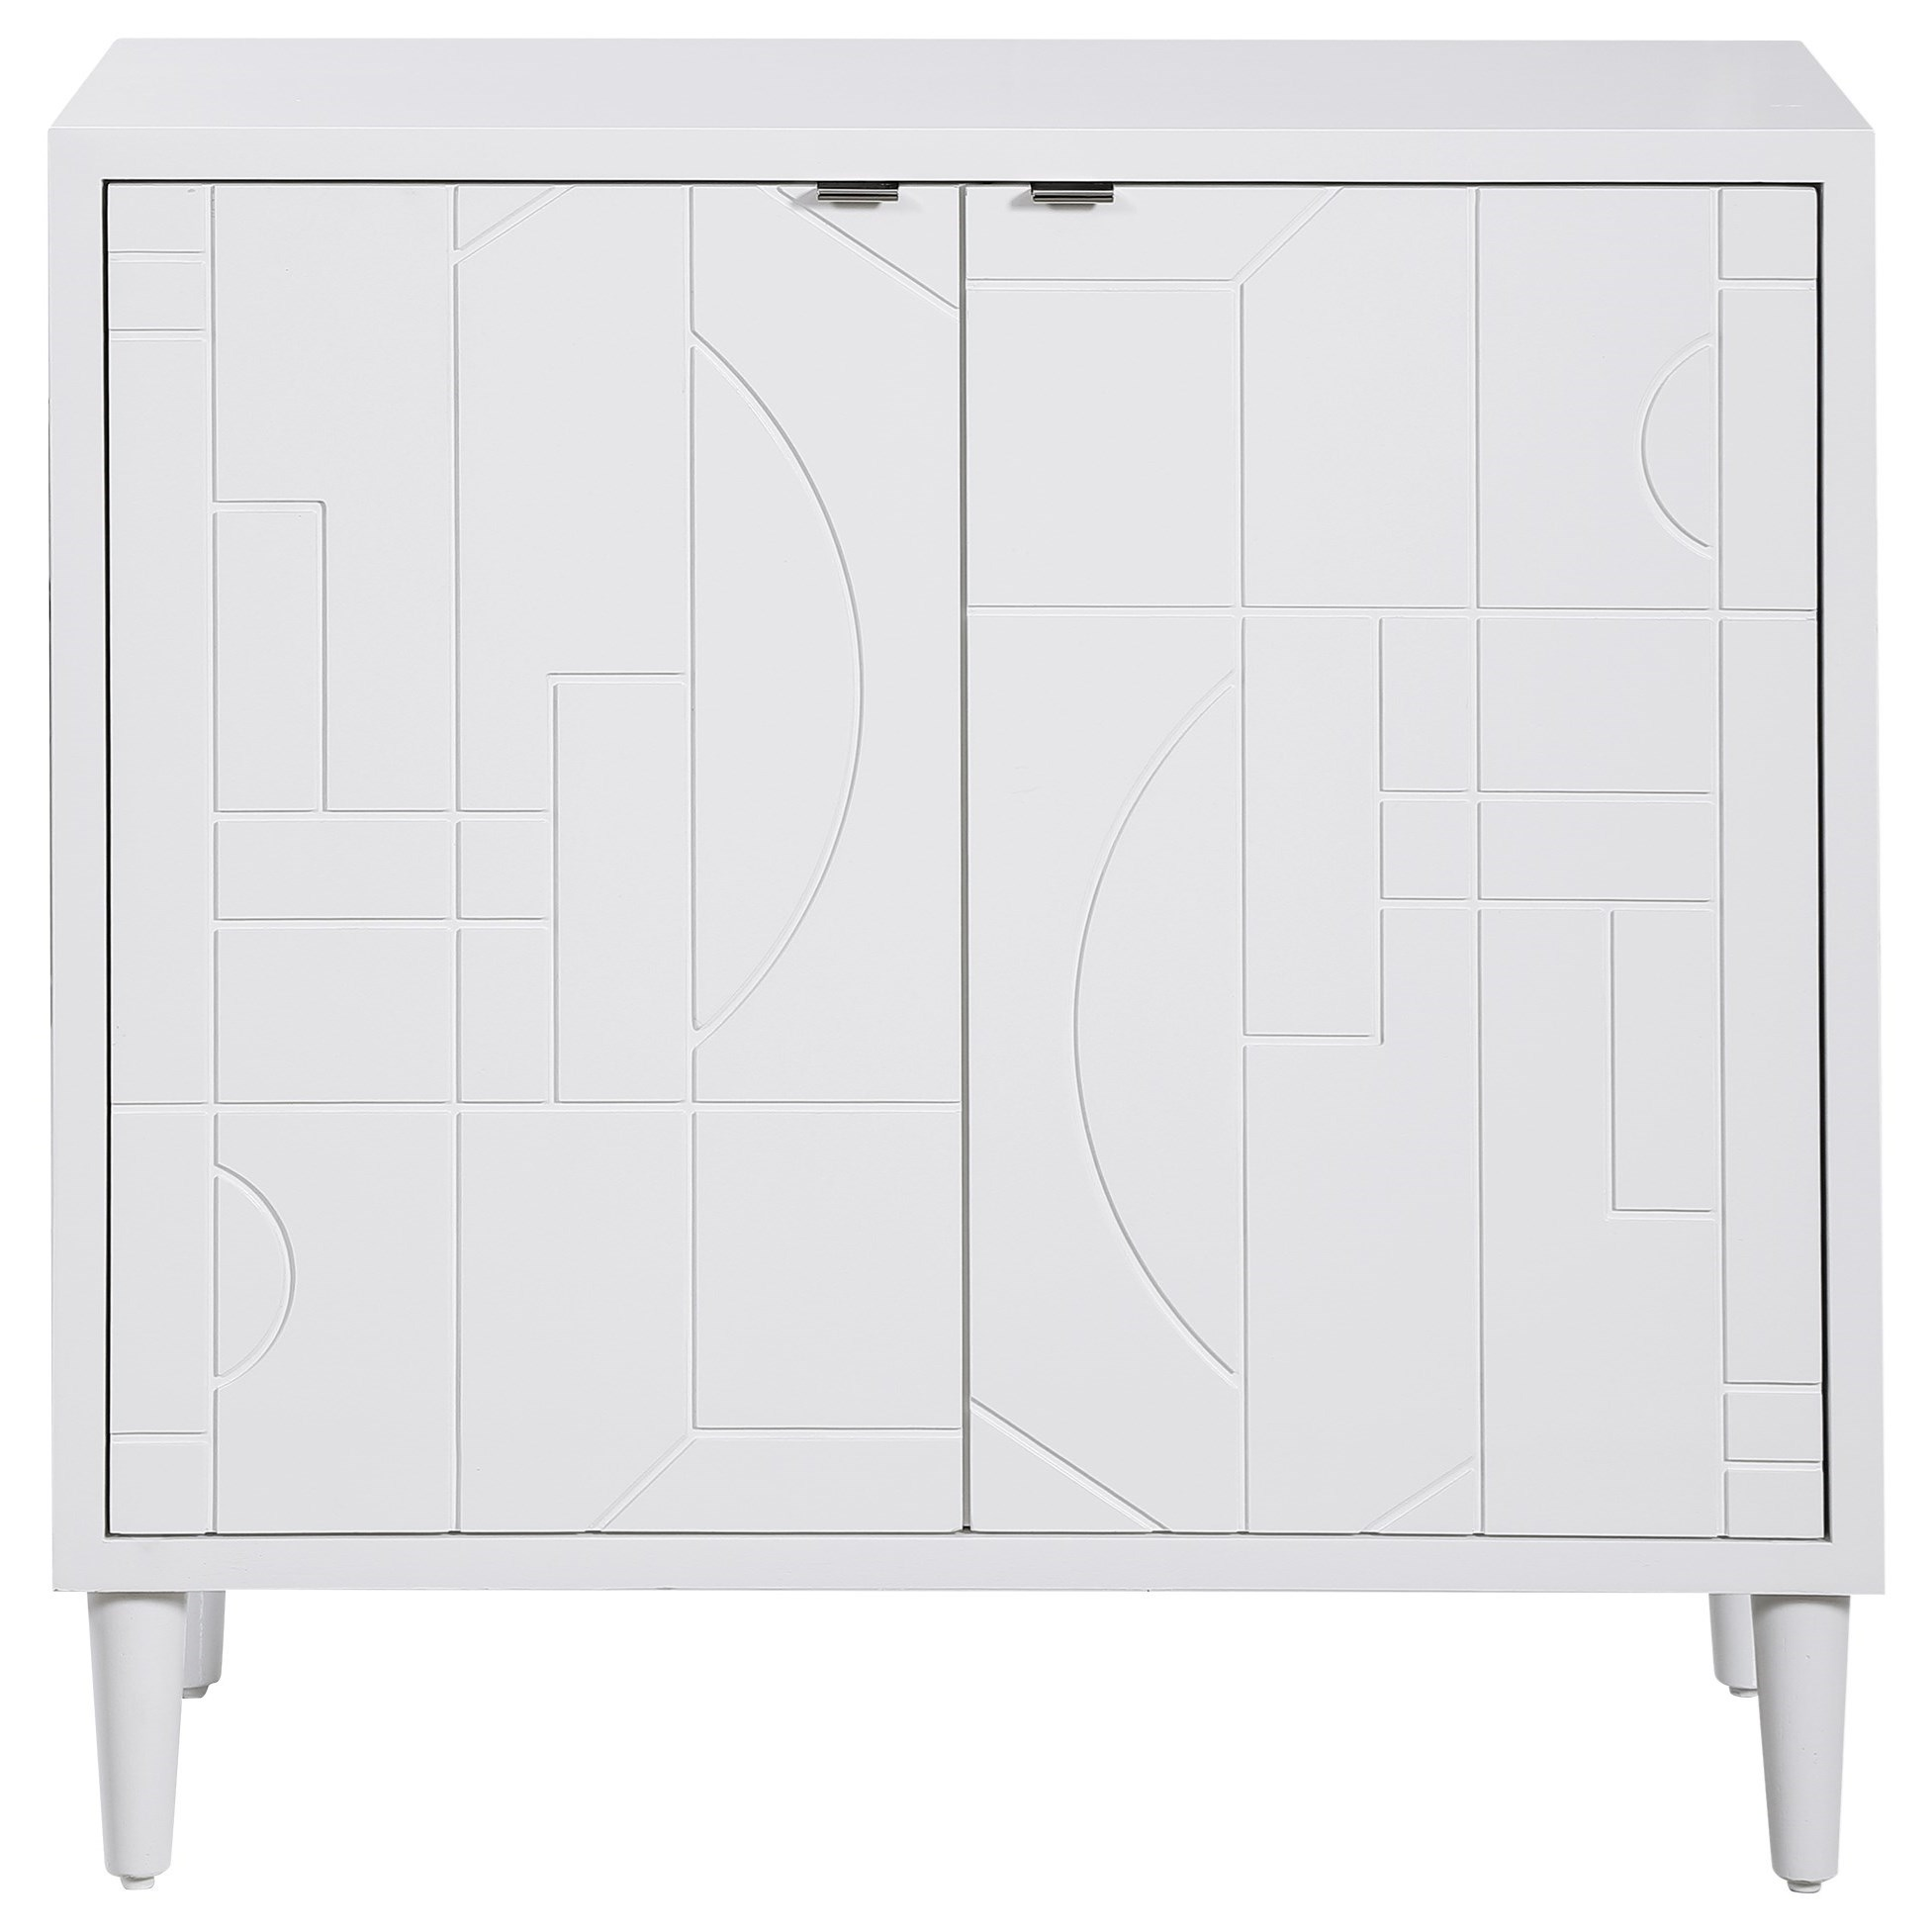 Accent Furniture - Chests Stockholm White 2-Door Cabinet by Uttermost at Dunk & Bright Furniture